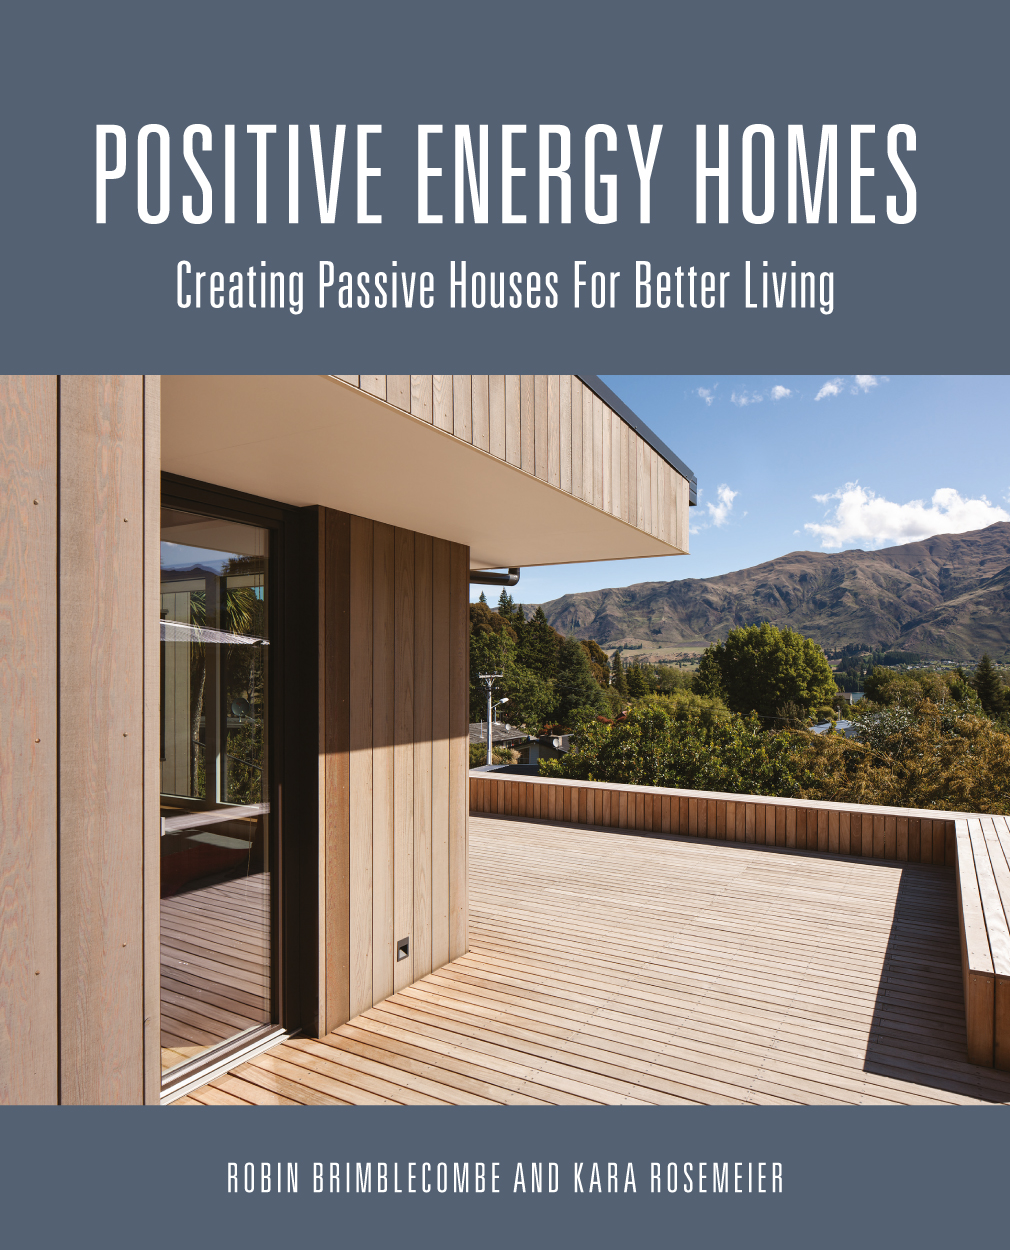 Cover of Positive Energy Homes featuring exterior photograph of wooden hom